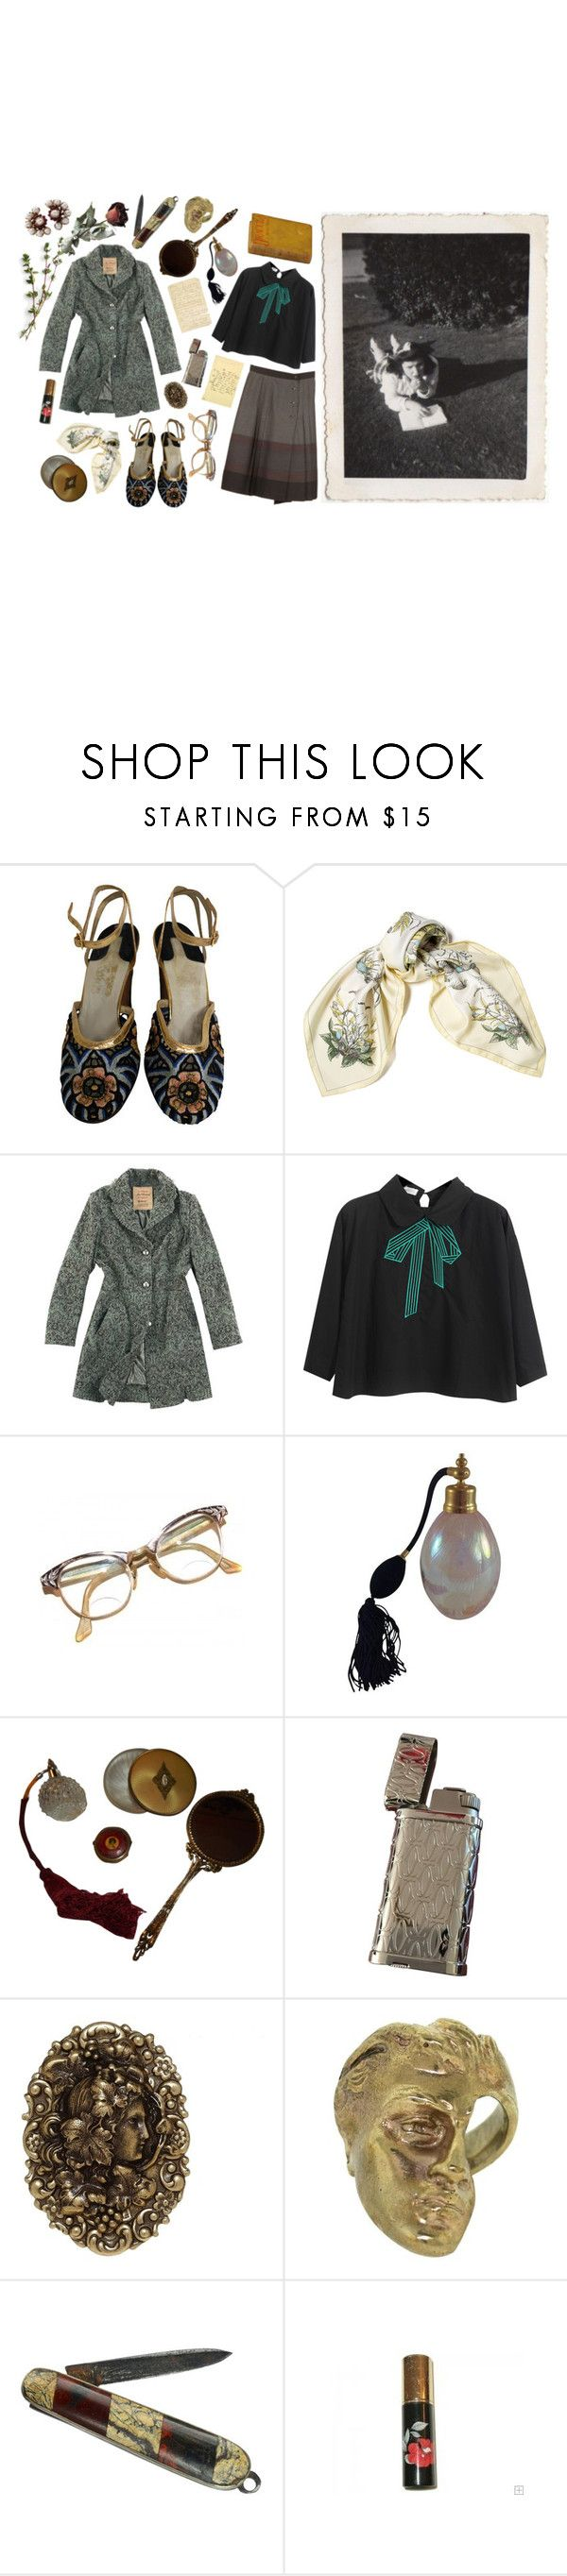 """Untitled #1995"" by flapper-shoes ❤ liked on Polyvore featuring Salvatore Ferragamo, Hermès, Joe Browns, Chicnova Fashion, Retrò, DK, Verde Rocks, Yunus & Eliza, red flower and Goossens"